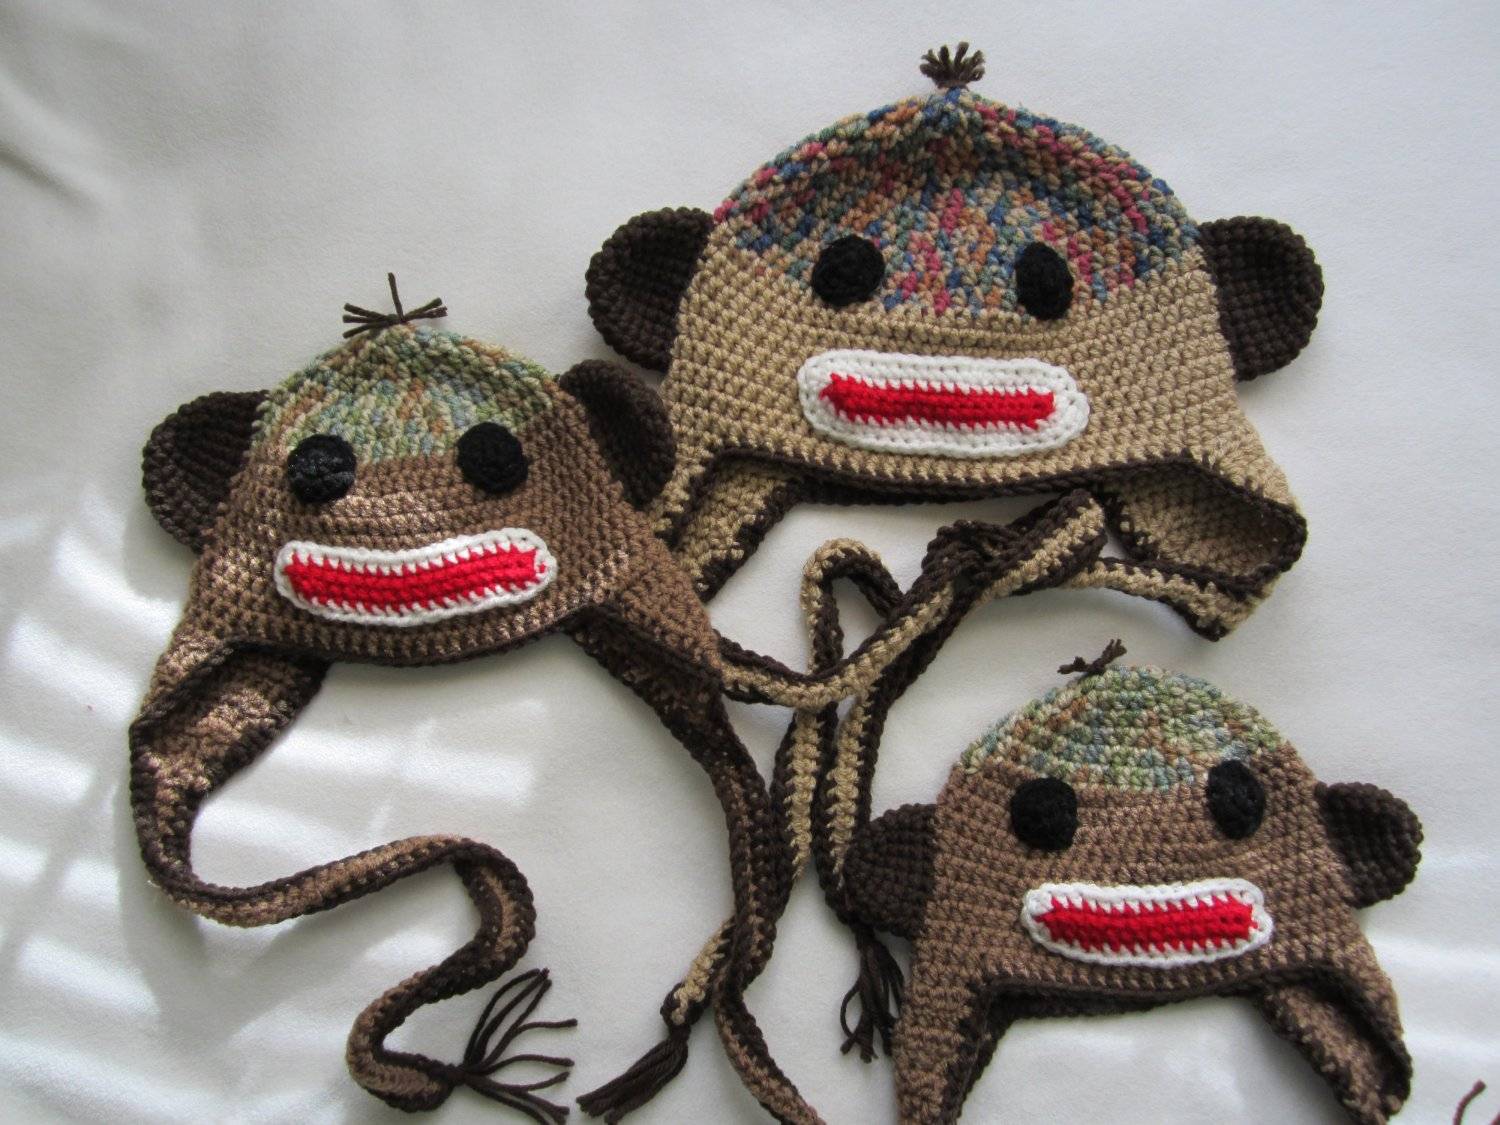 Crochet earflap monkey hat